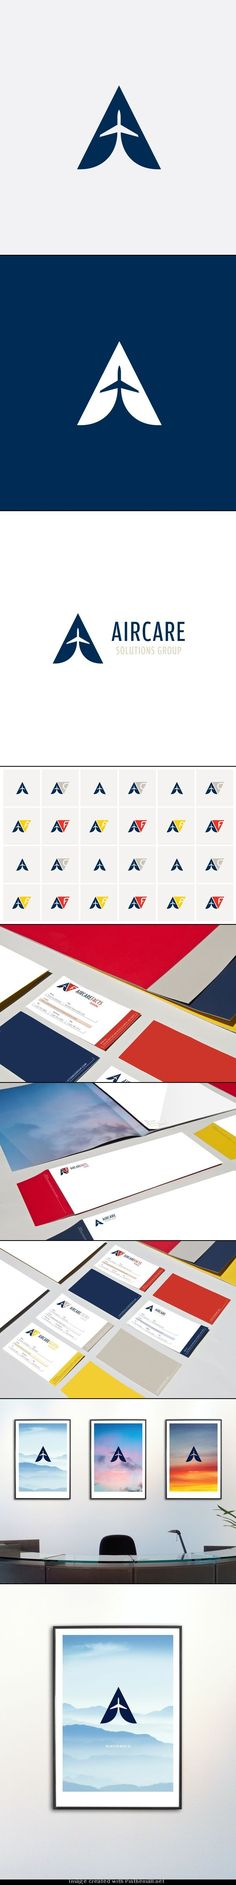 Re-brand for a private aviation company. www.behance.net/... - created via pinthemall.net